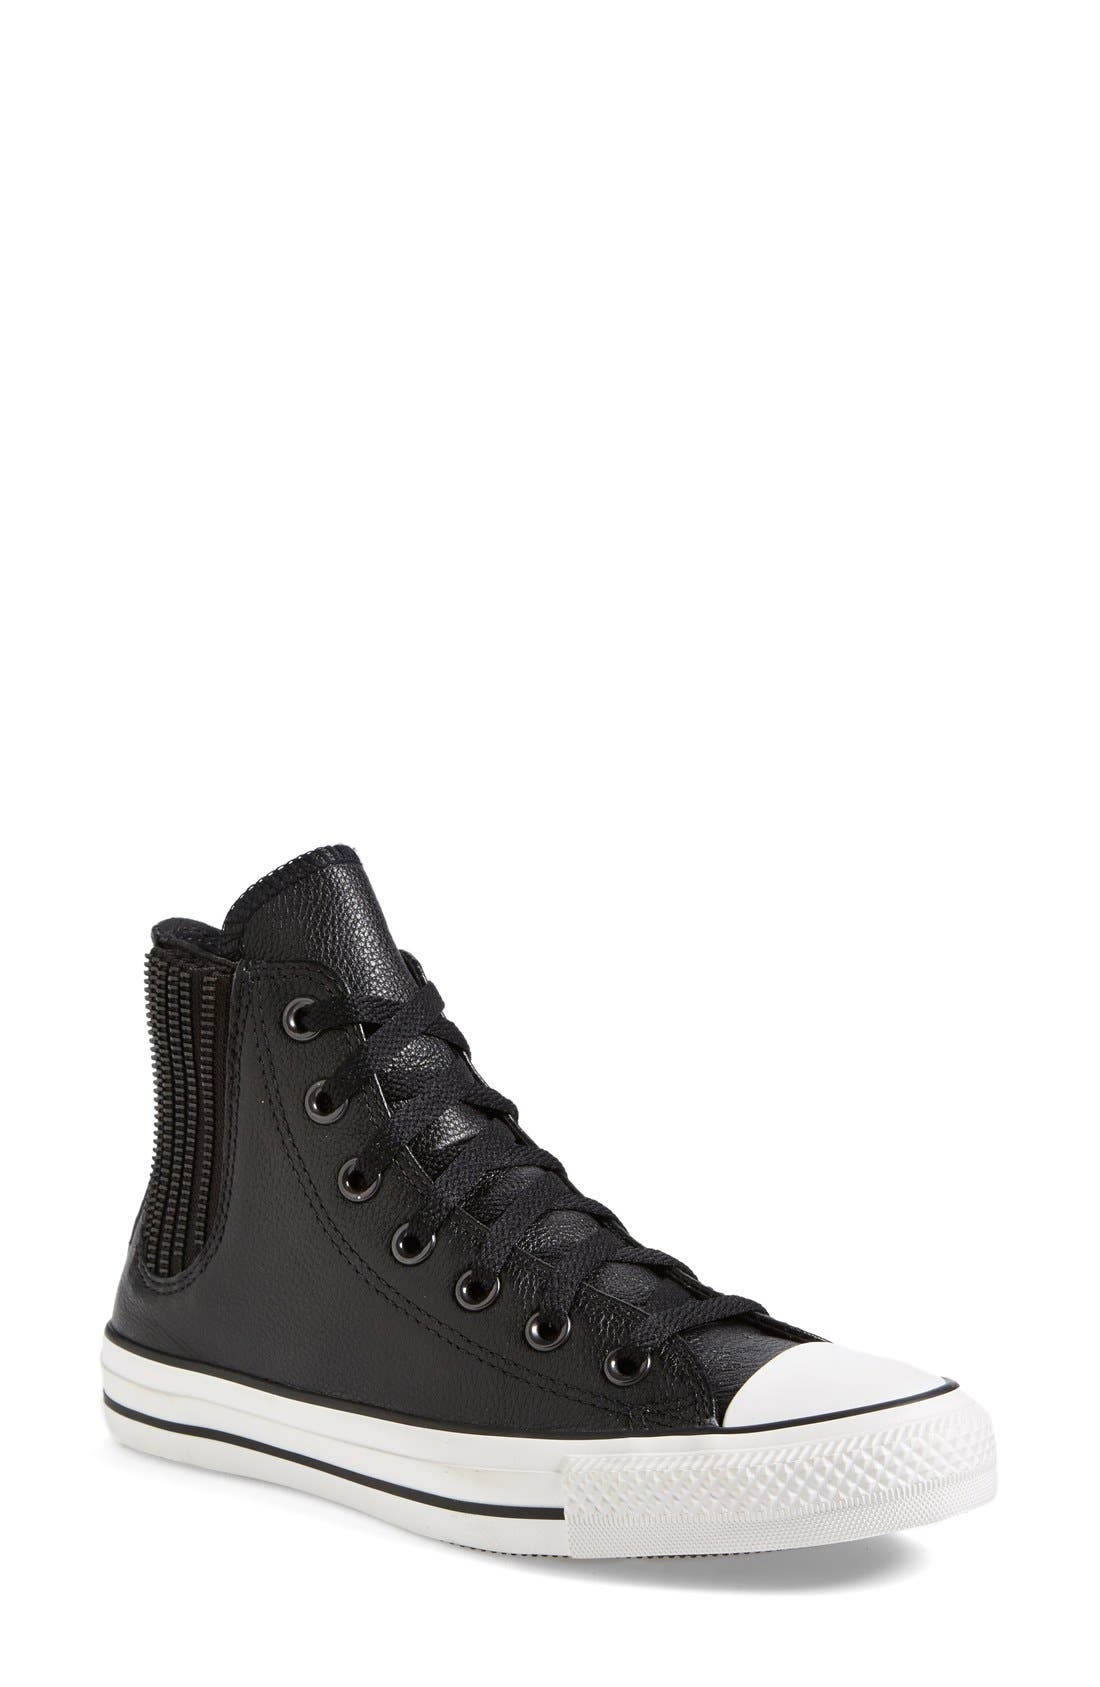 Main Image - Converse Chuck Taylor® All Star® 'Chelsee' Leather Sneaker (Women) (Nordstrom Exclusive)